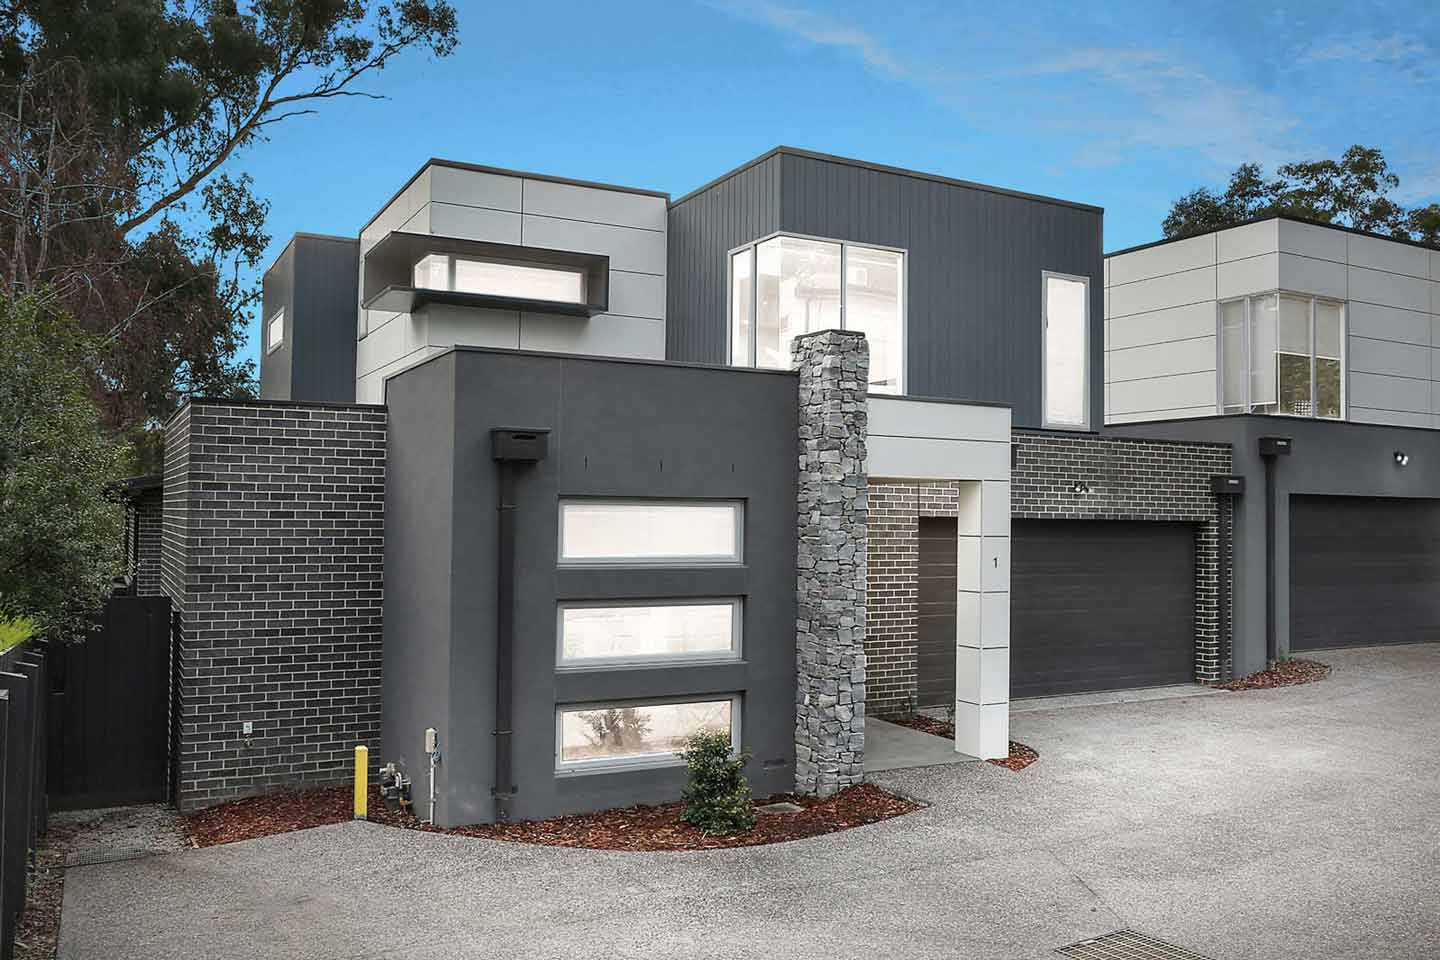 Extension builders melbourne ALT9